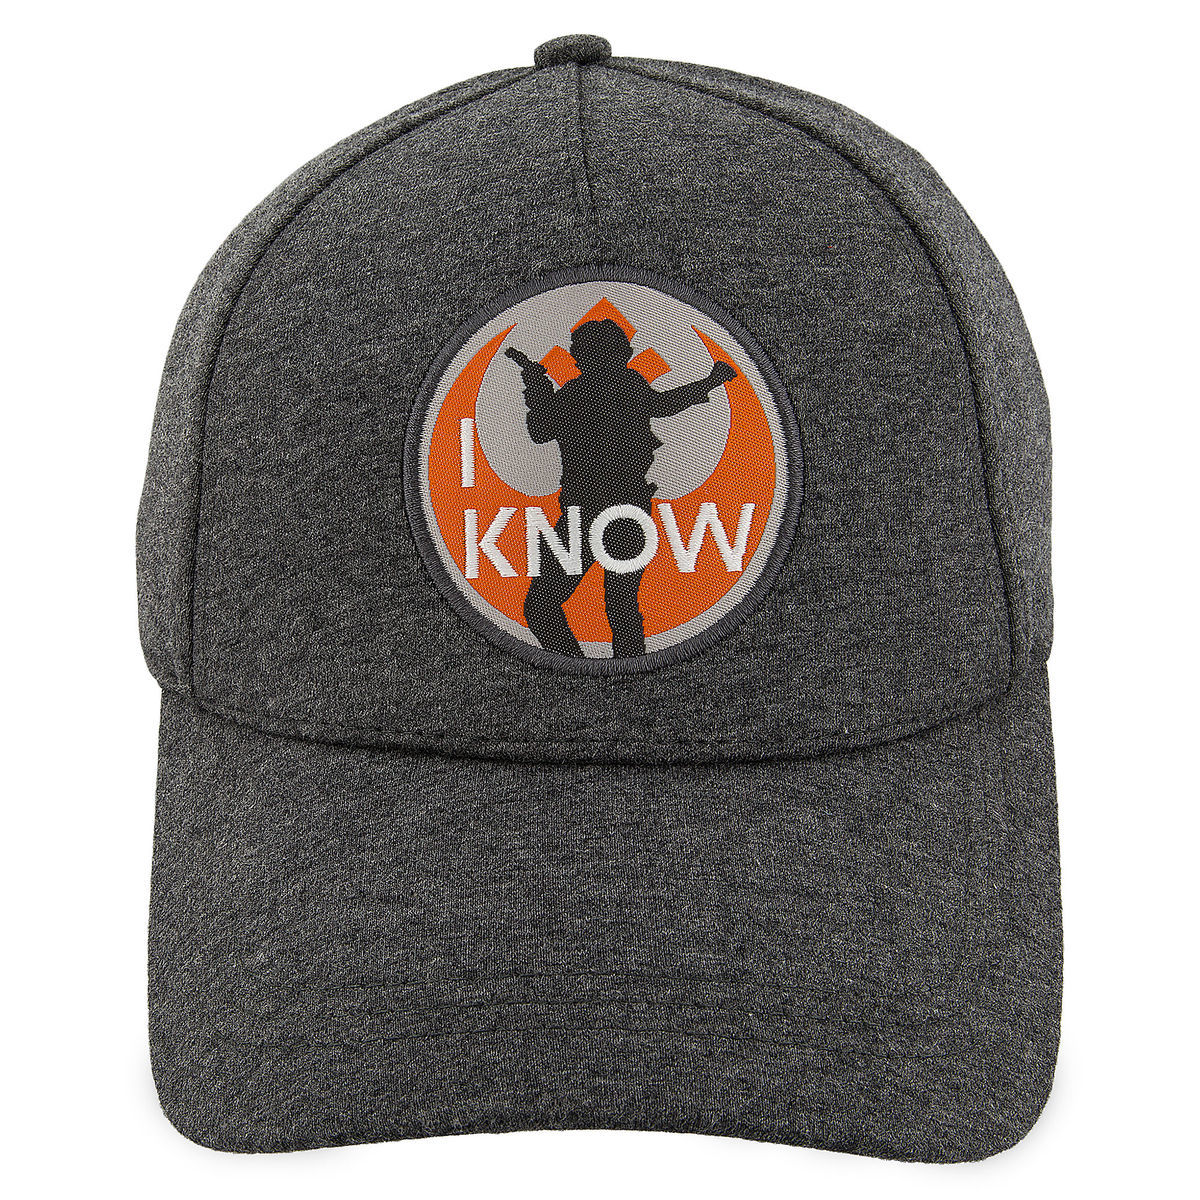 5eef887385c Product Image of Han Solo Baseball Cap for Adults - Star Wars   1